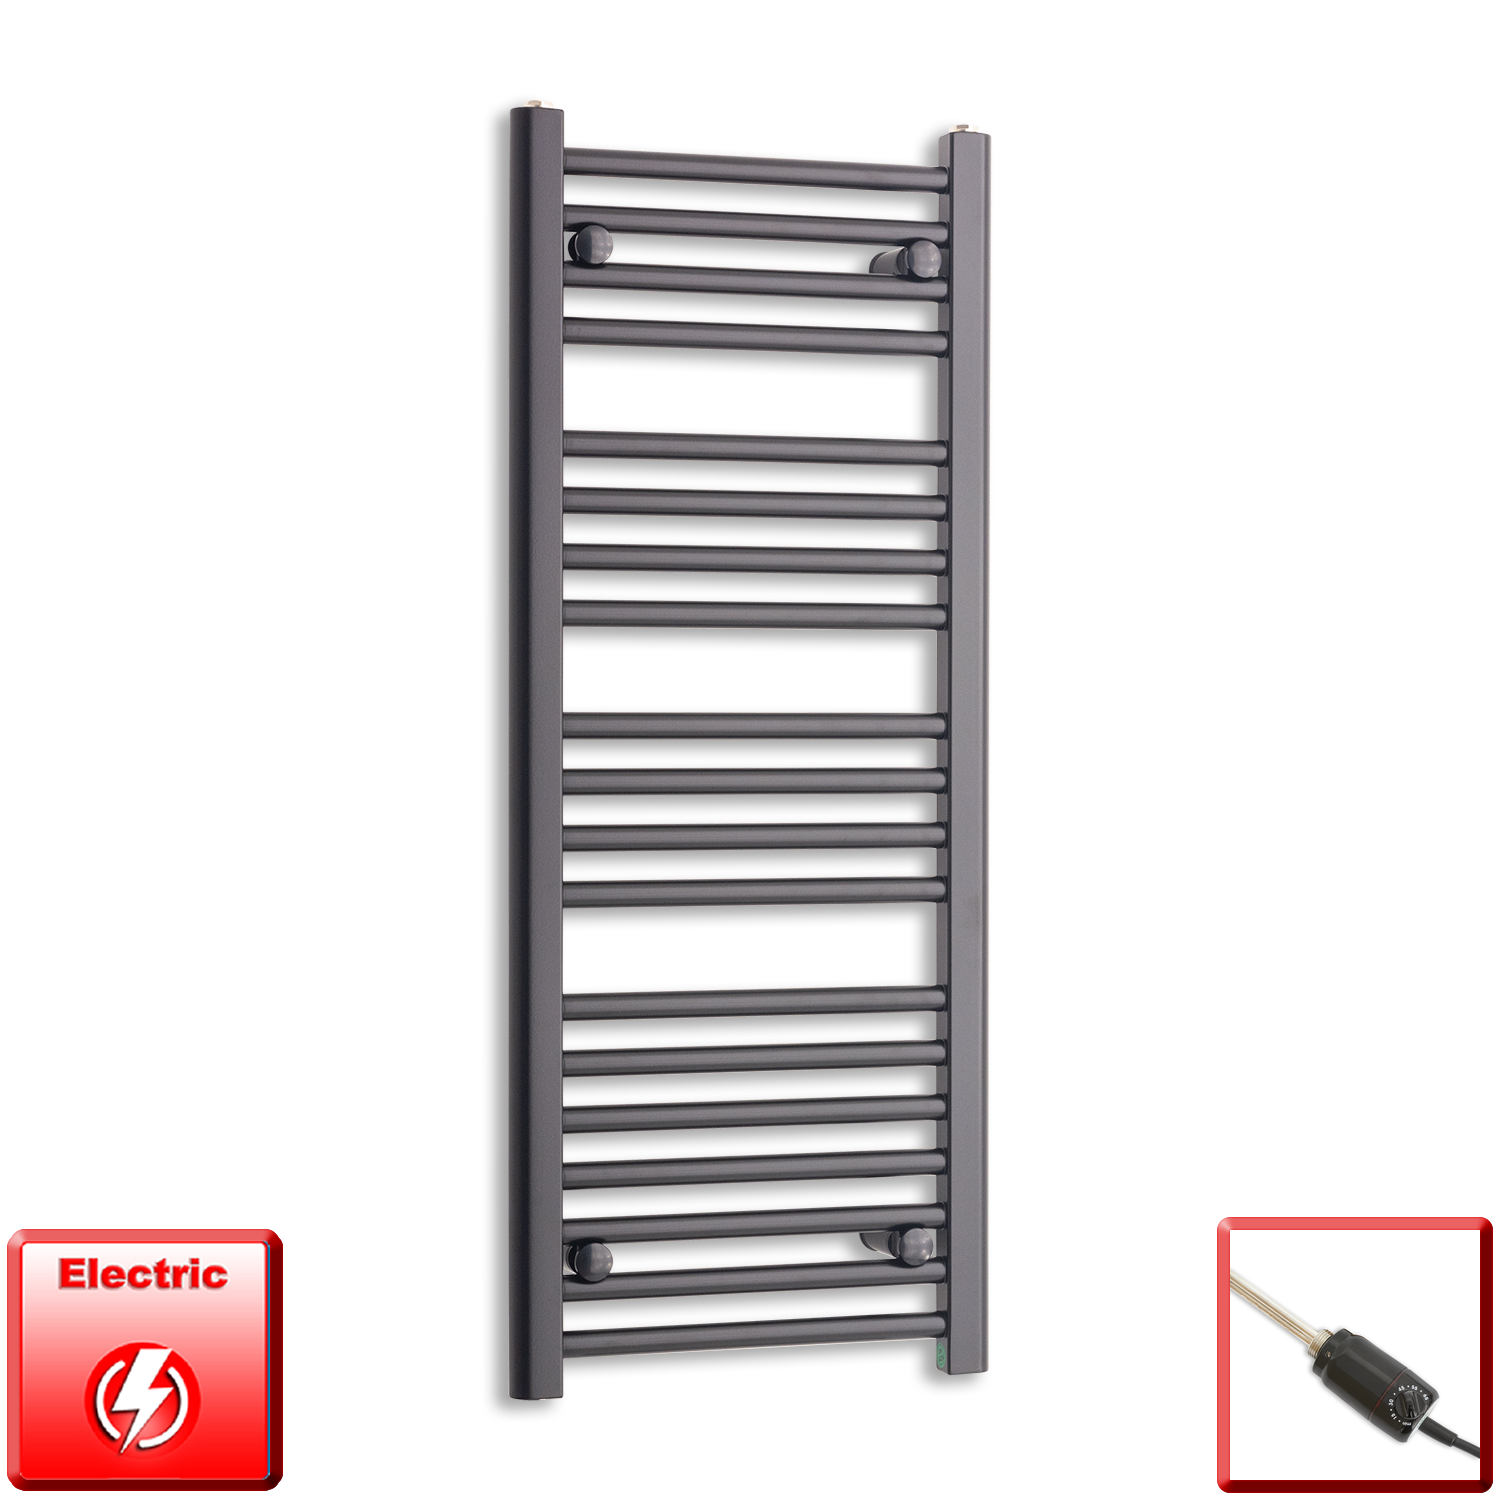 450mm Wide 1000mm High Pre-Filled Black Electric Towel Rail Radiator With Thermostatic GT Element